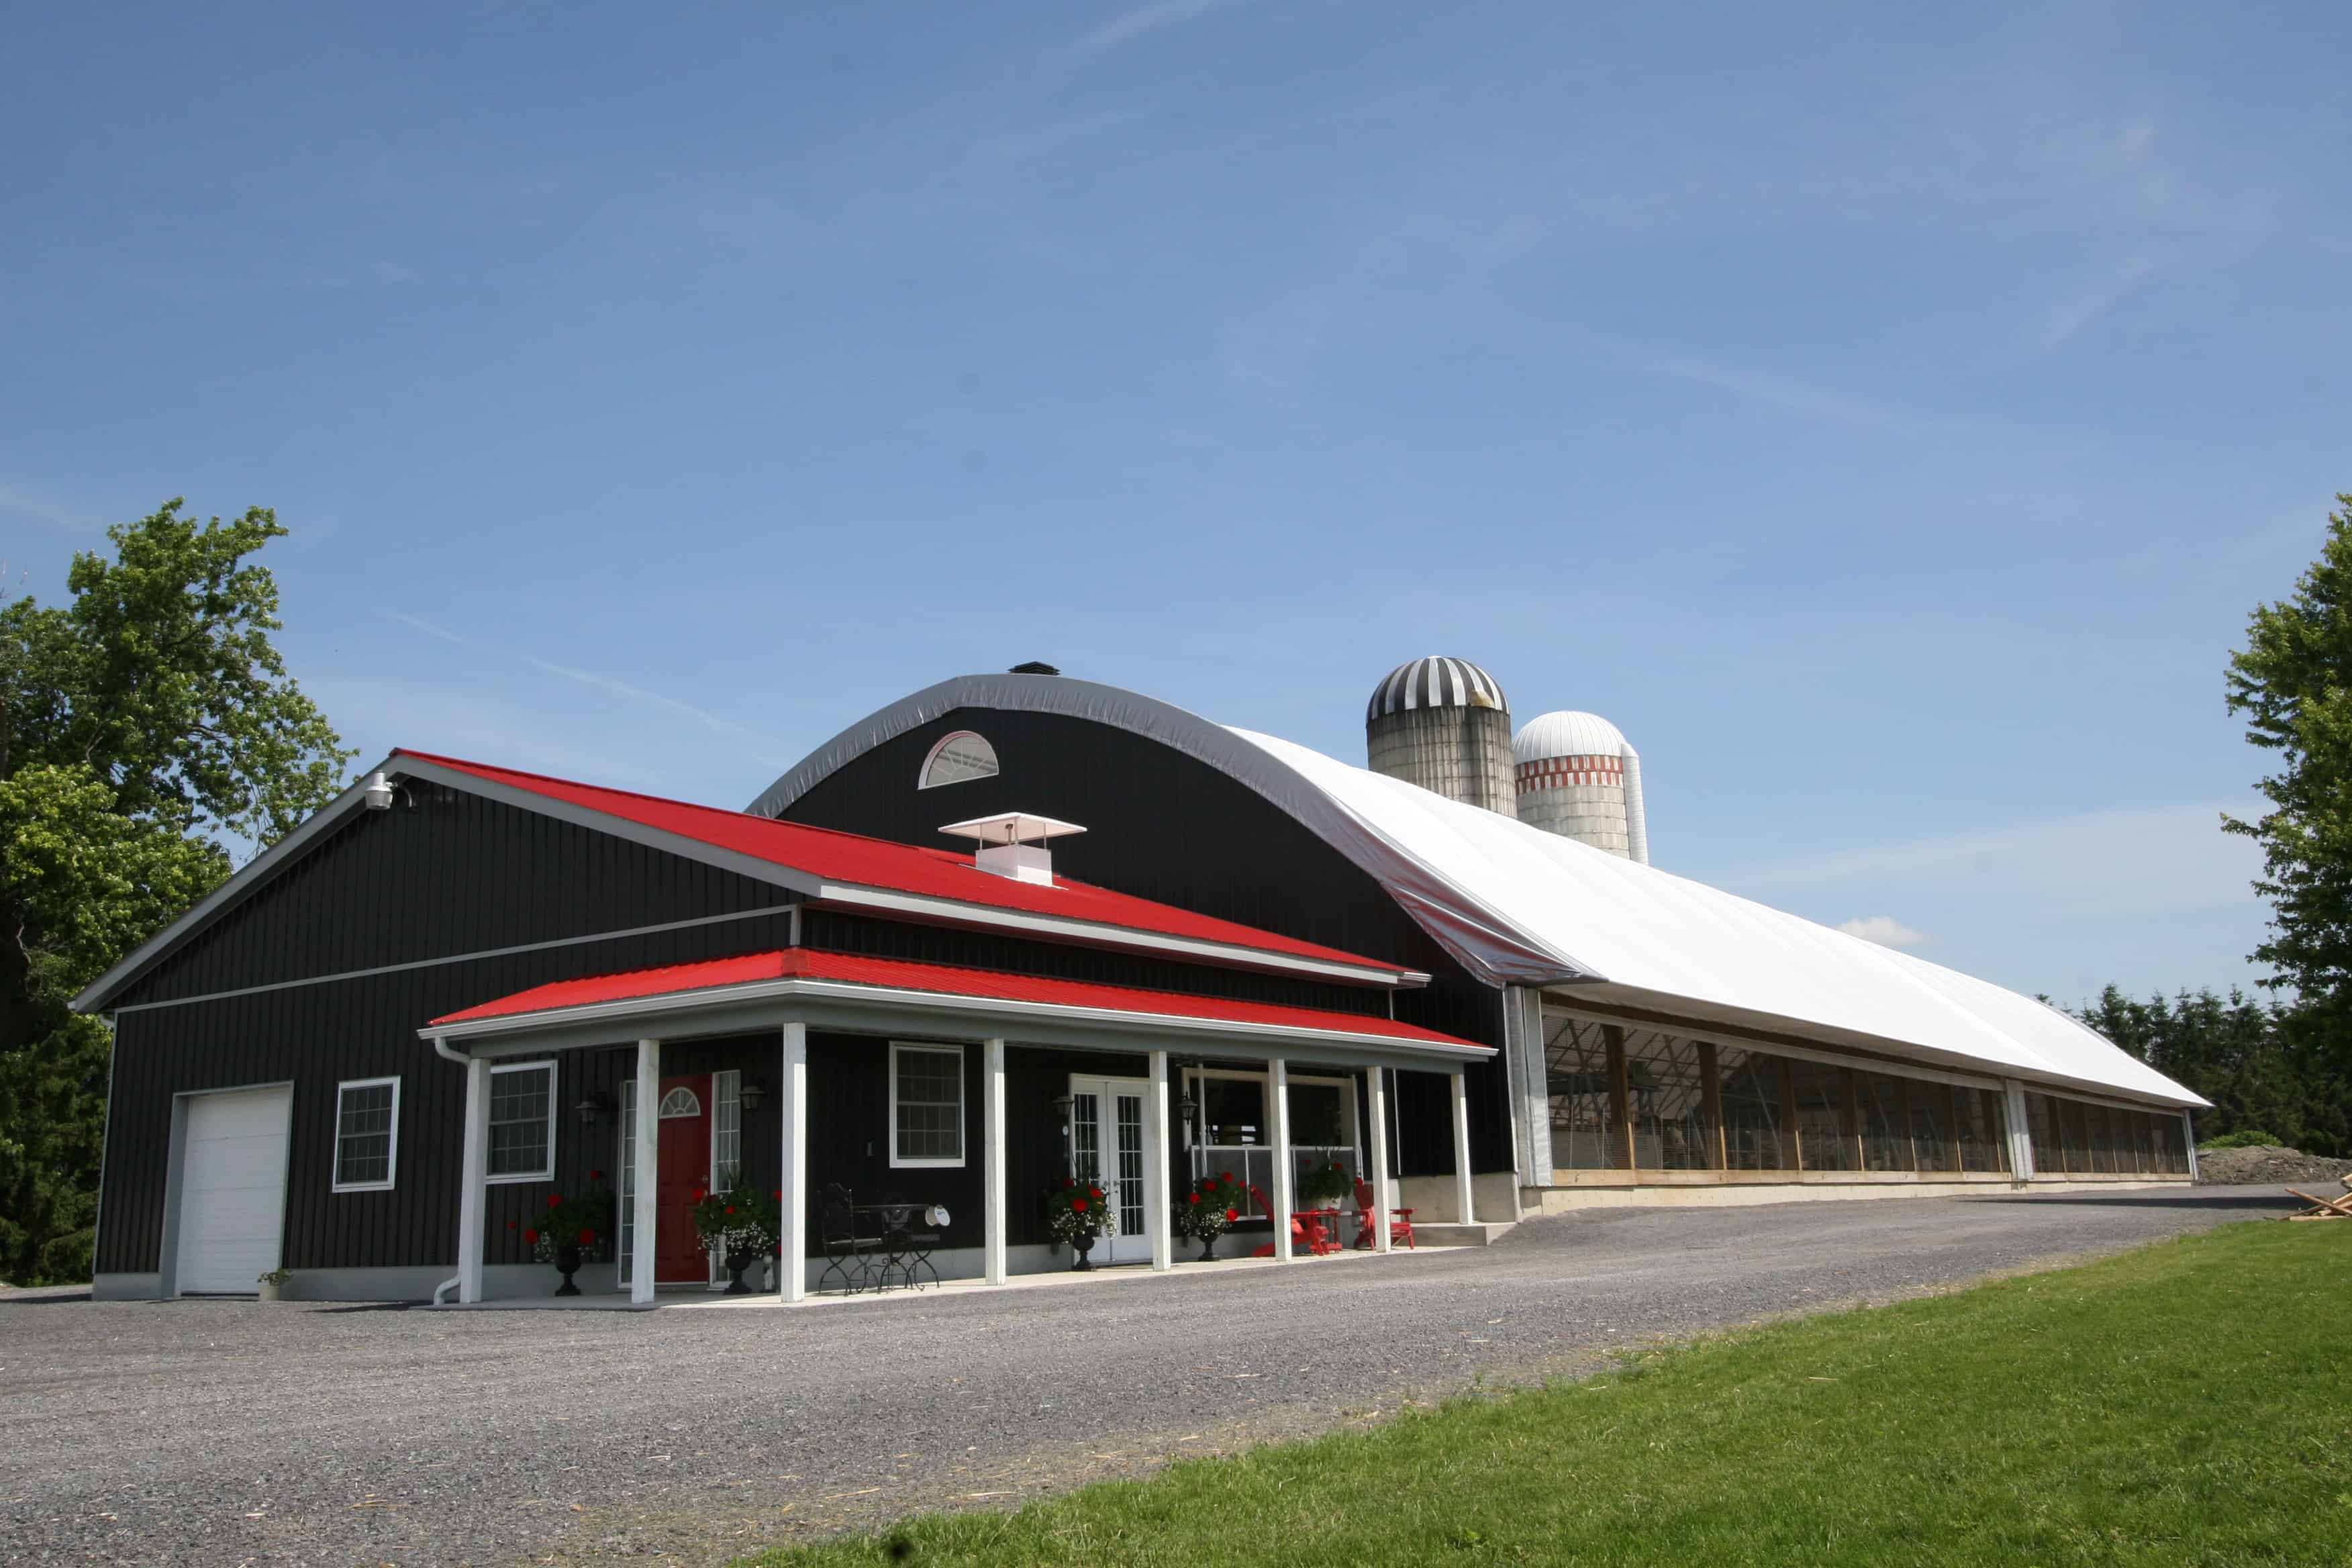 Dairy Barn and Milking Parlor - Britespan Building Systems Inc